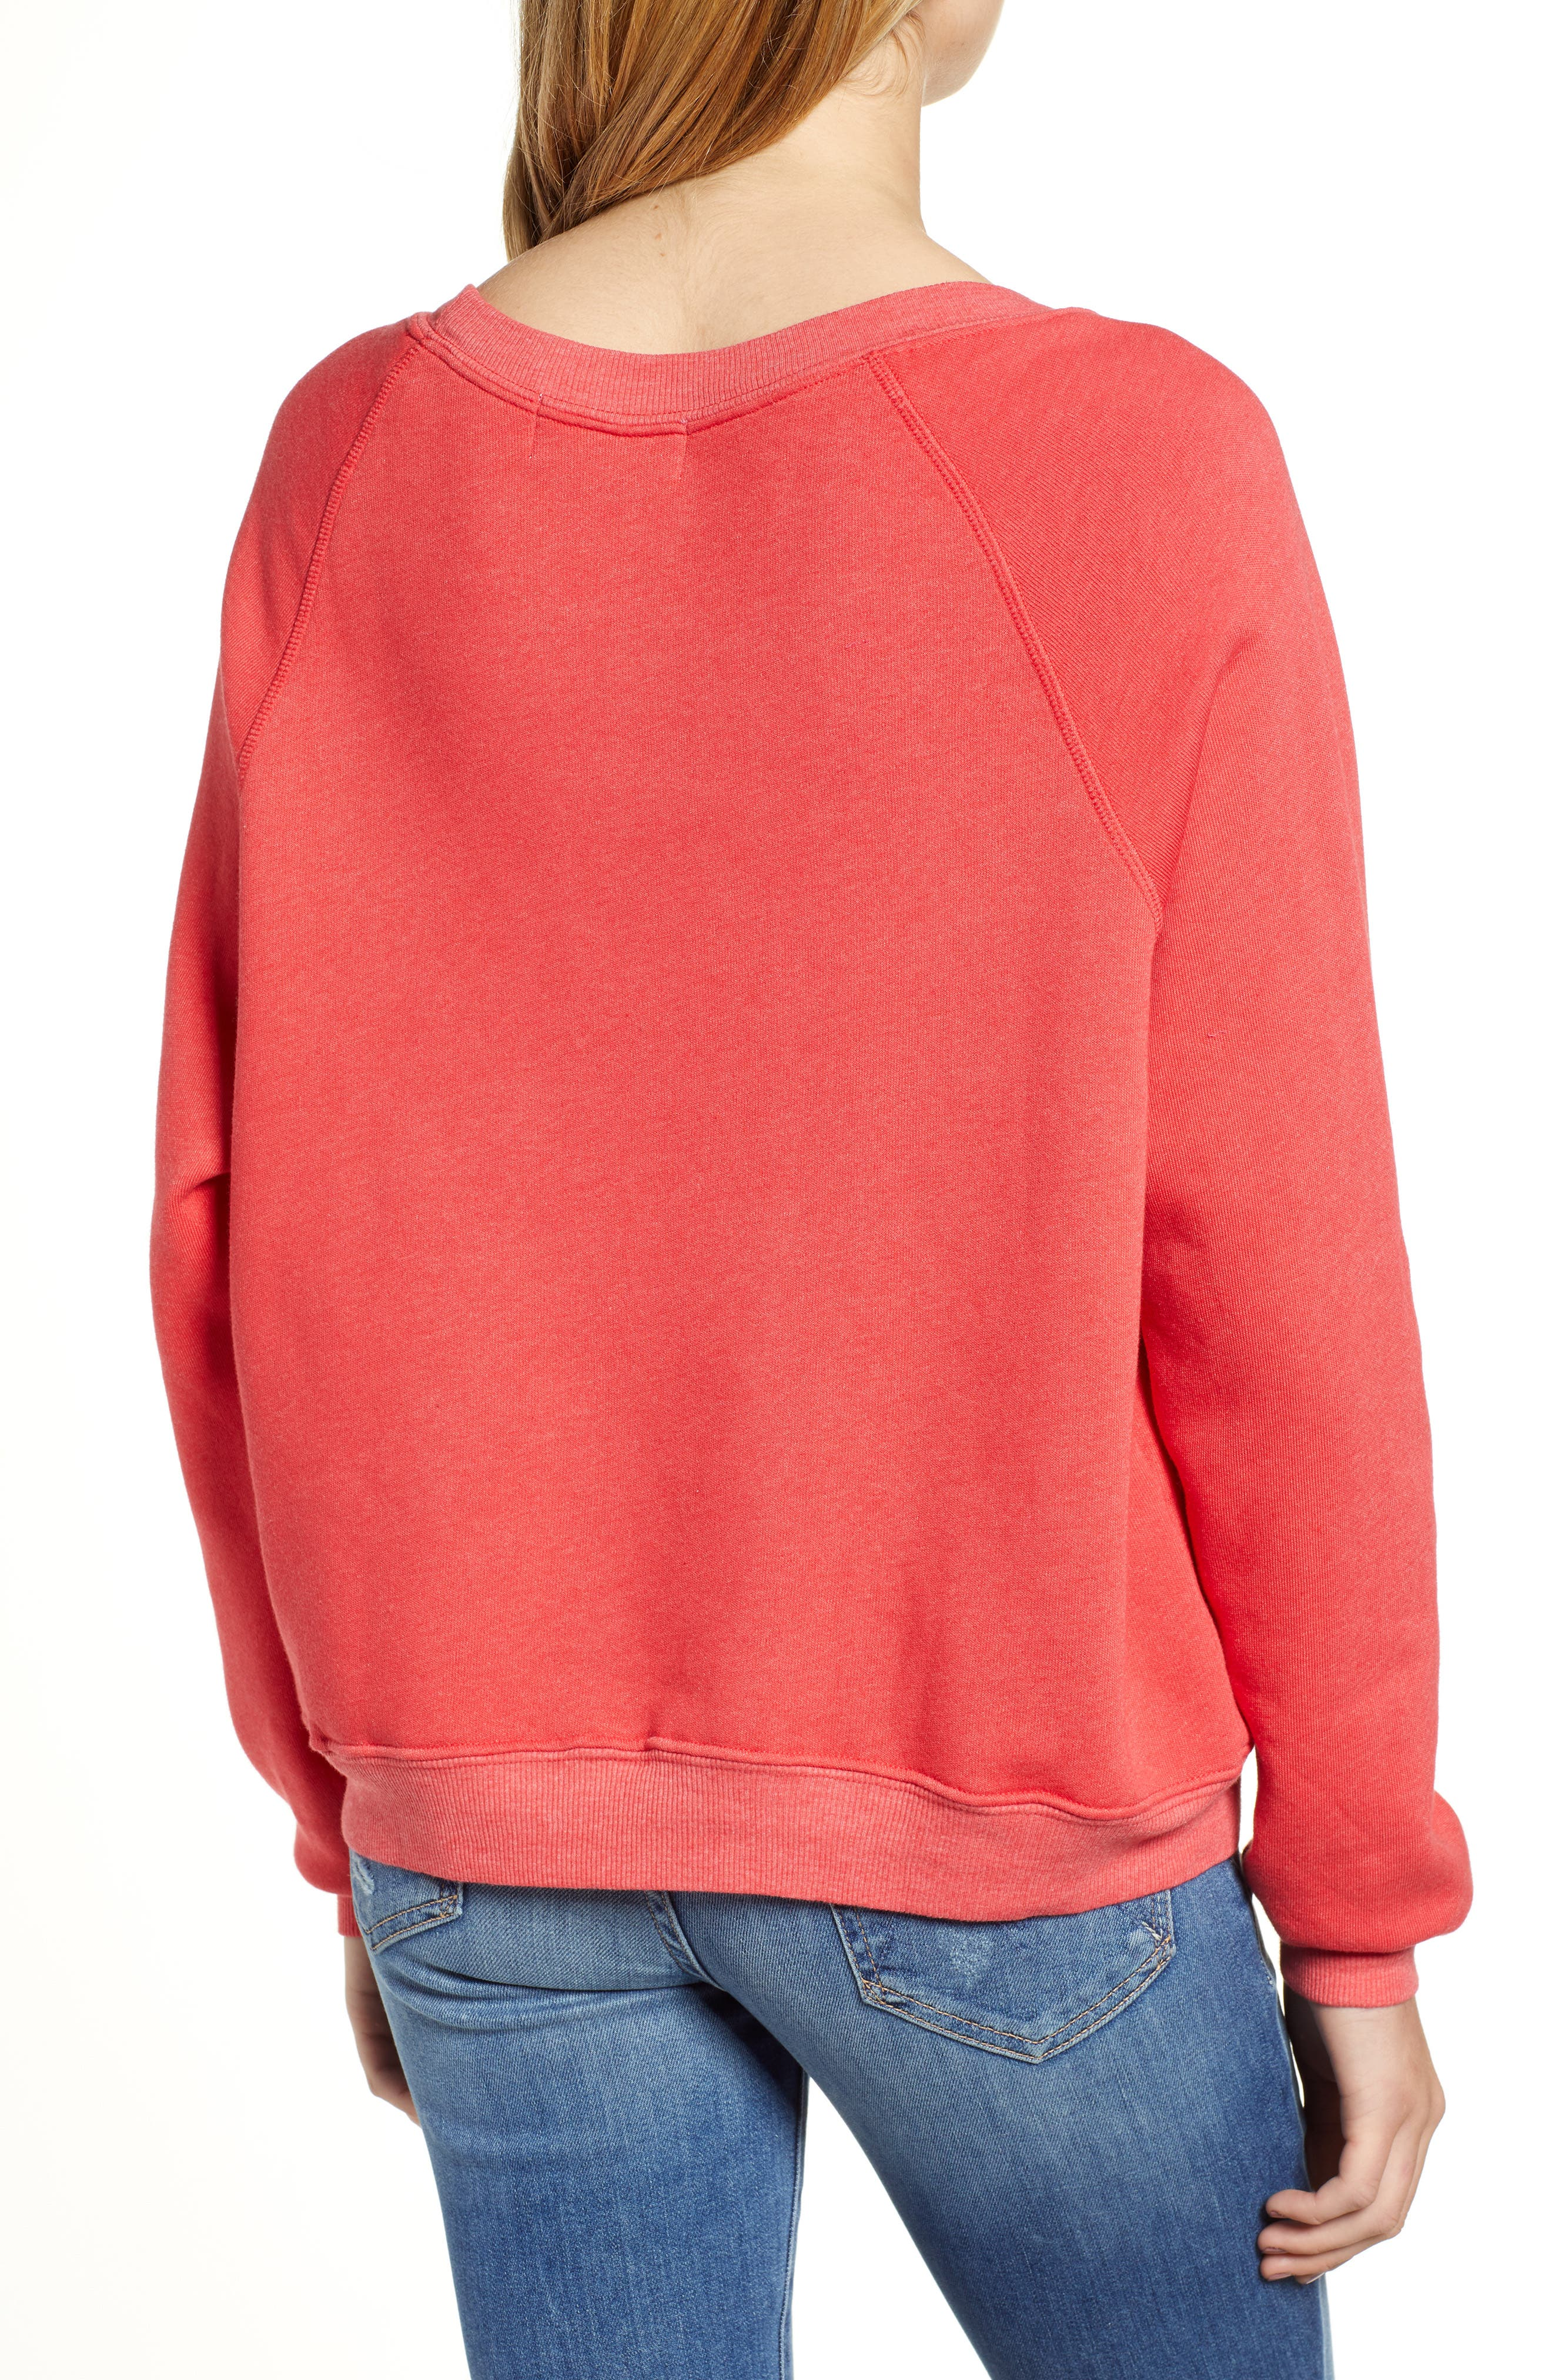 Monday Sommer Sweatshirt,                             Alternate thumbnail 2, color,                             SCARLET